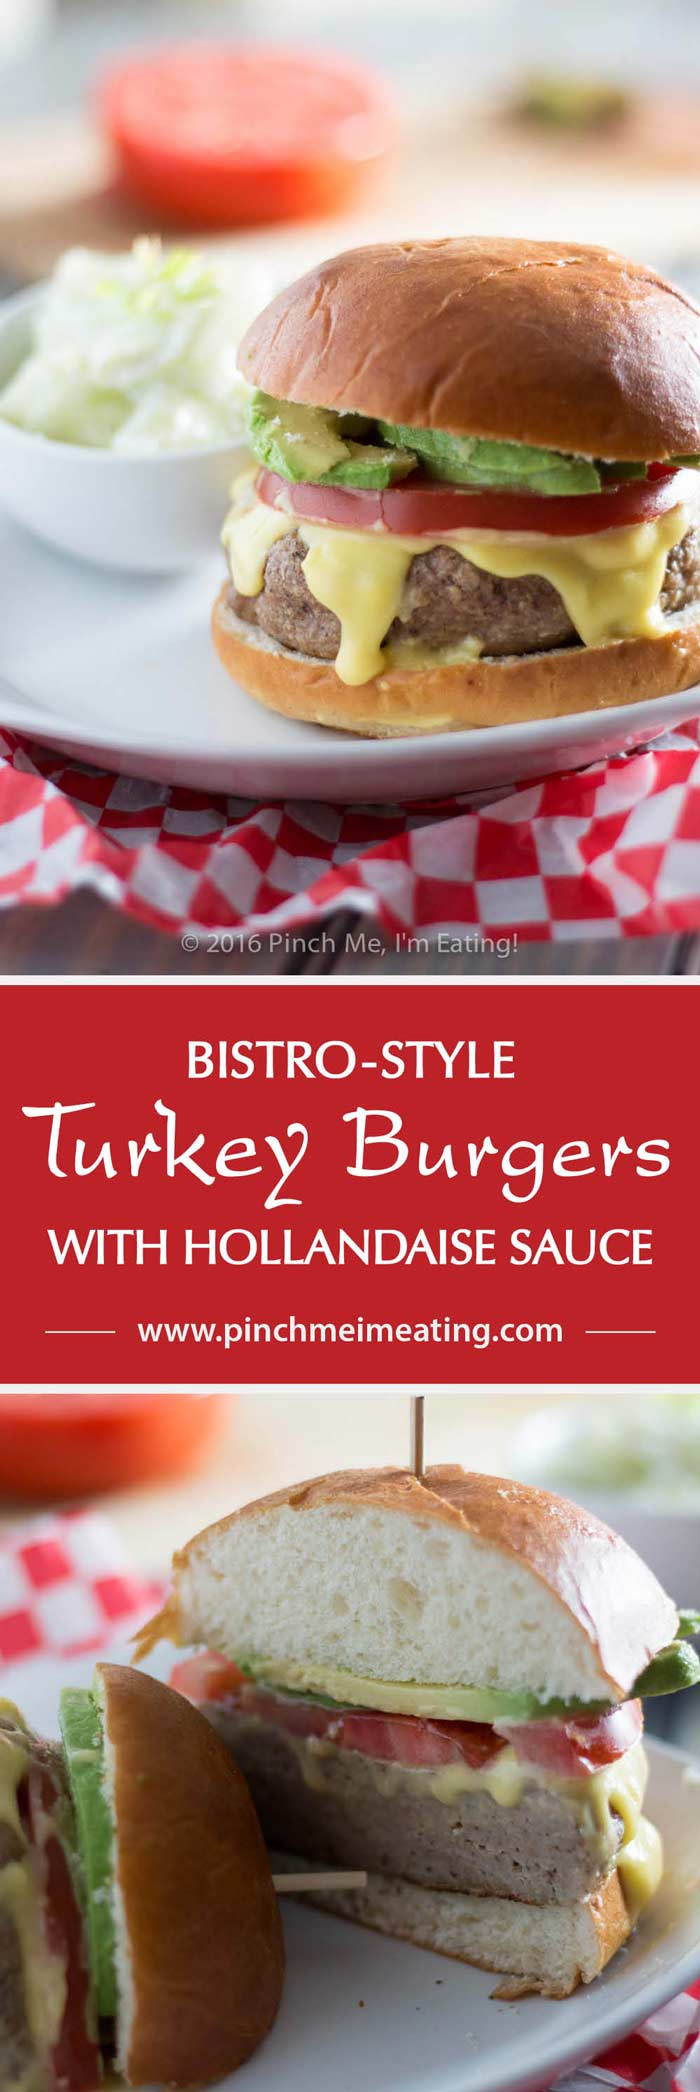 This juicy, aromatic turkey burger topped with tomato, avocado, and Hollandaise sauce will make you feel like you're relaxing at an outdoor cafe! | www.pinchmeimeating.com